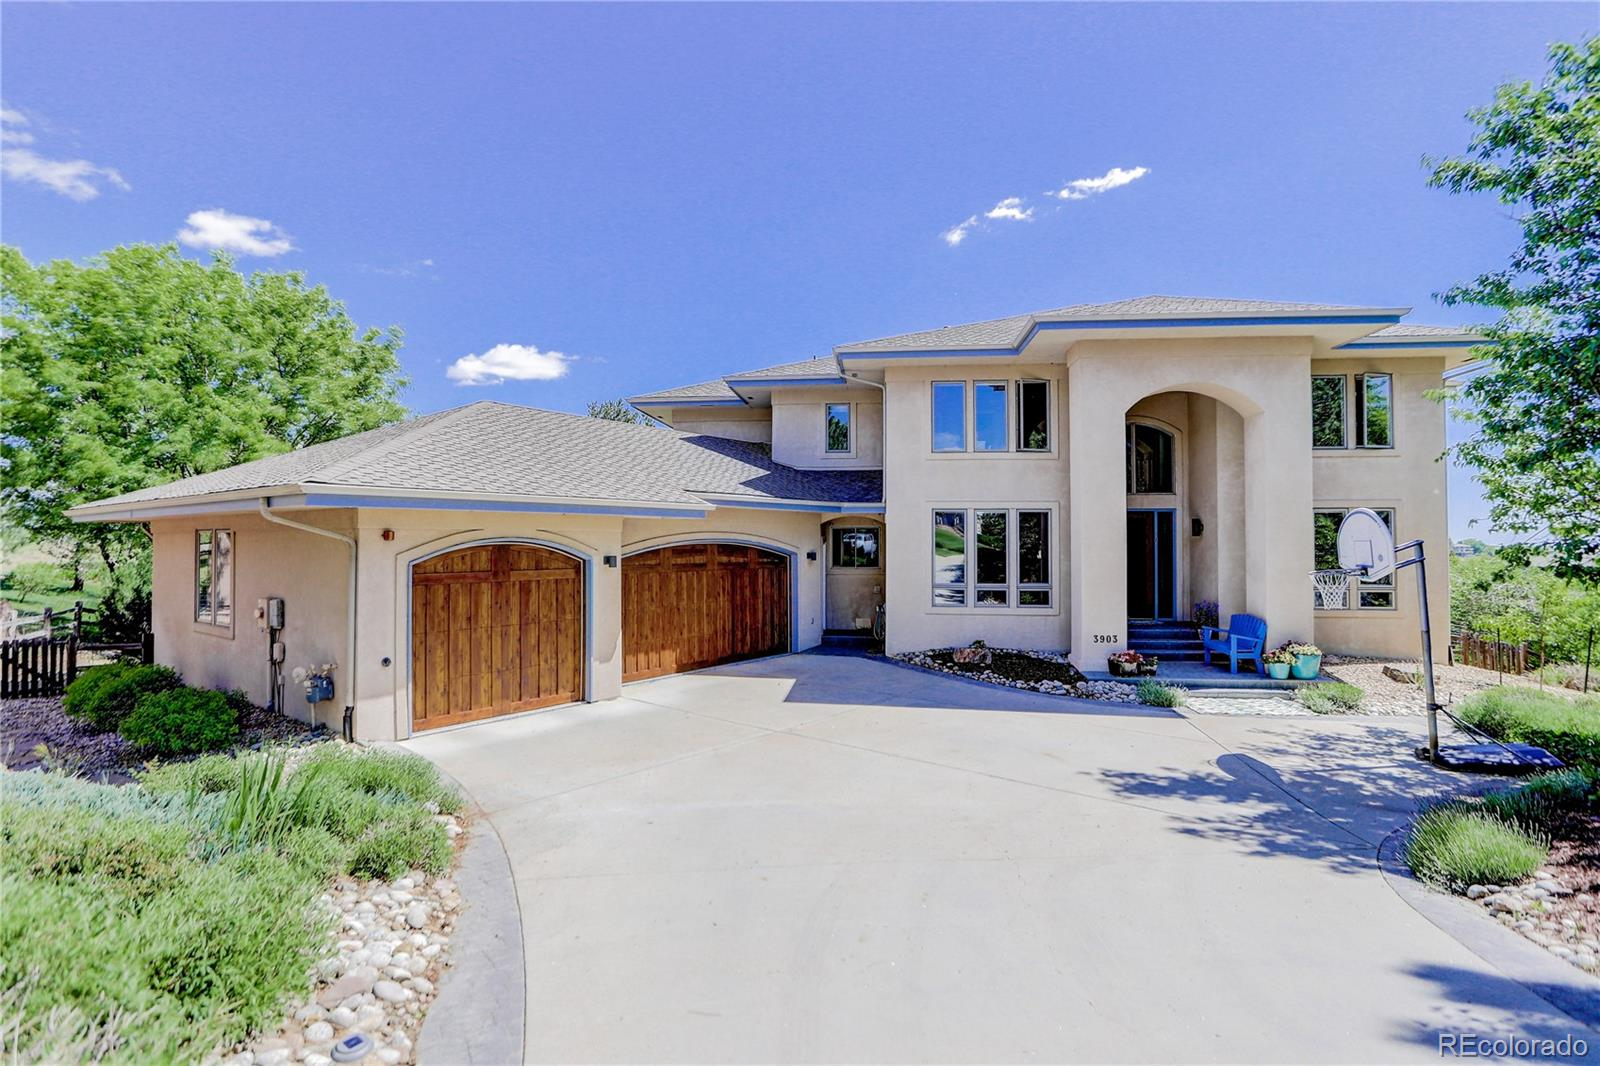 3903 Divot Court, Niwot, CO 80503 - Niwot, CO real estate listing